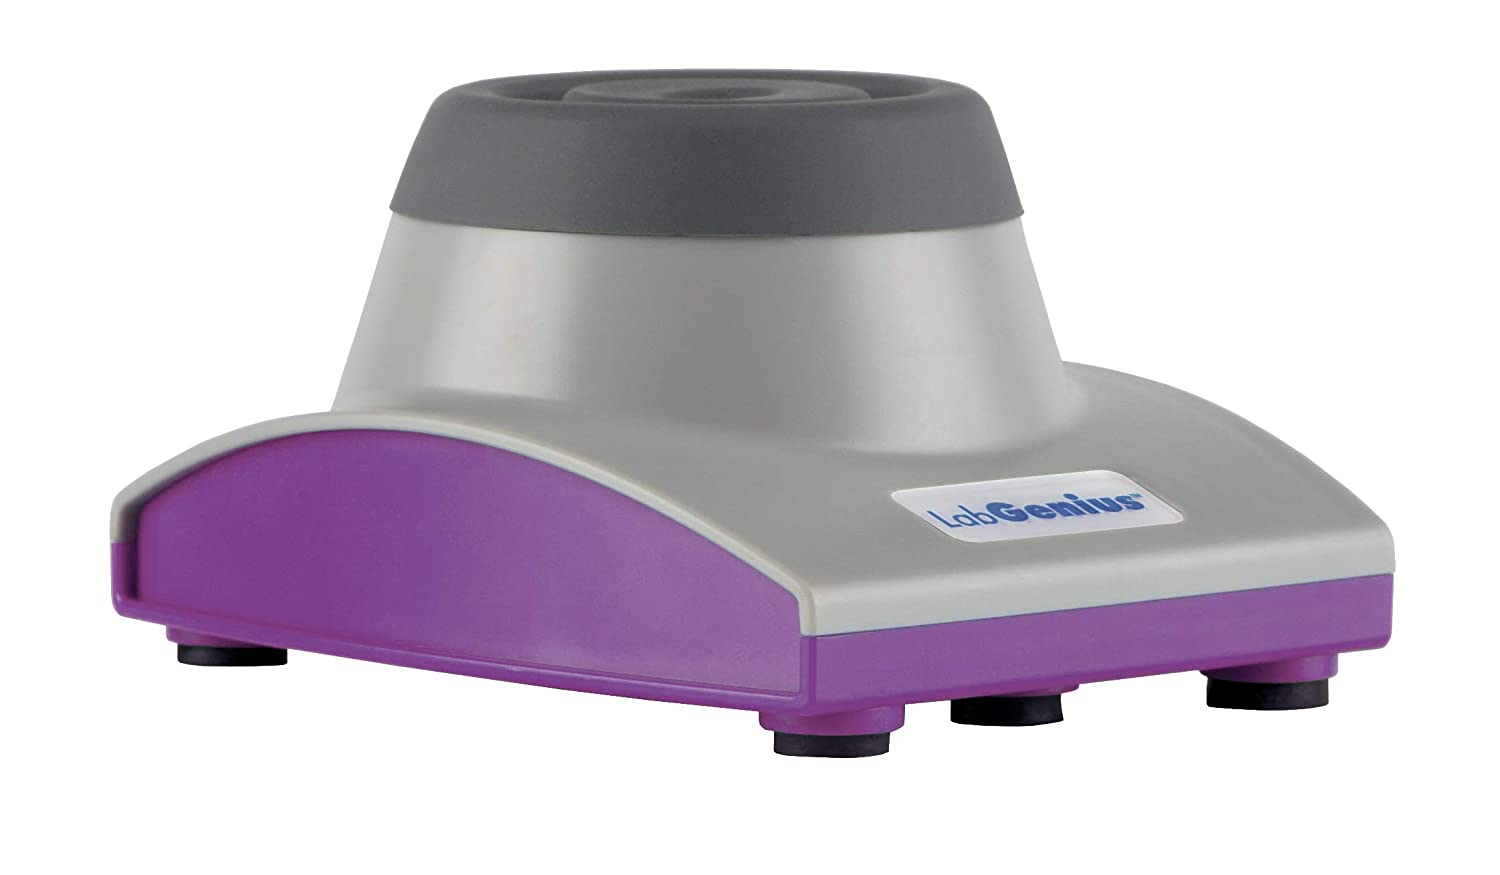 LabGenius HS120155DS Mini Vortex Mixer Advanced, Grey/Purple